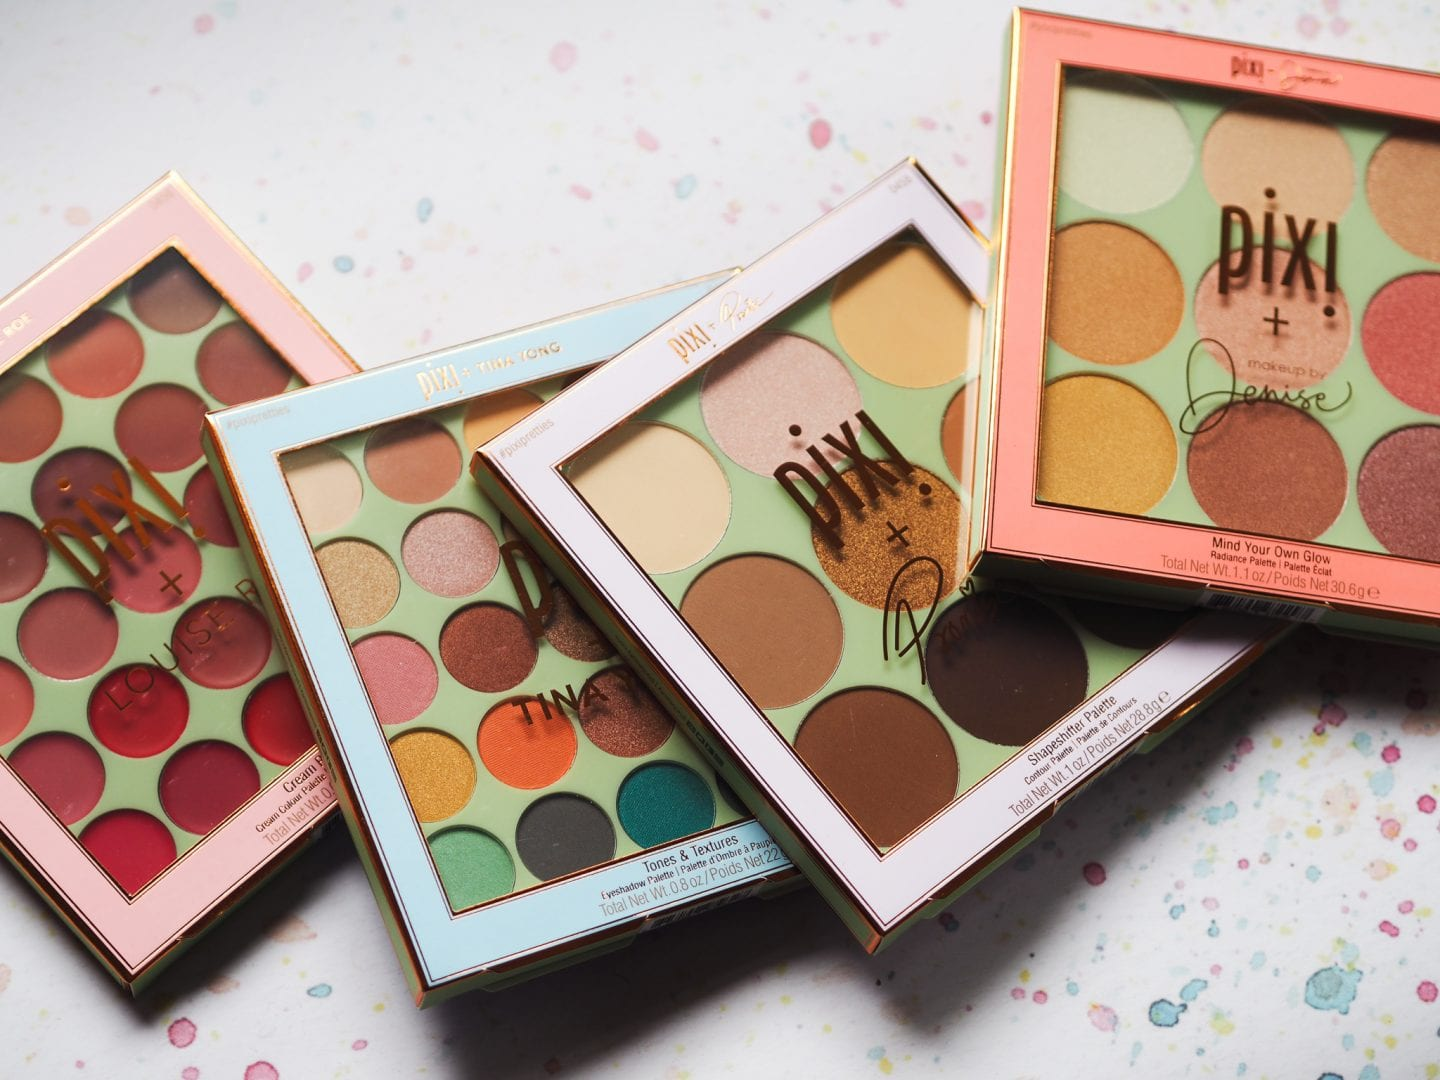 pixi beauty #pixipretties make up by Denise Louise roe make up palette Tina long promise make up artist